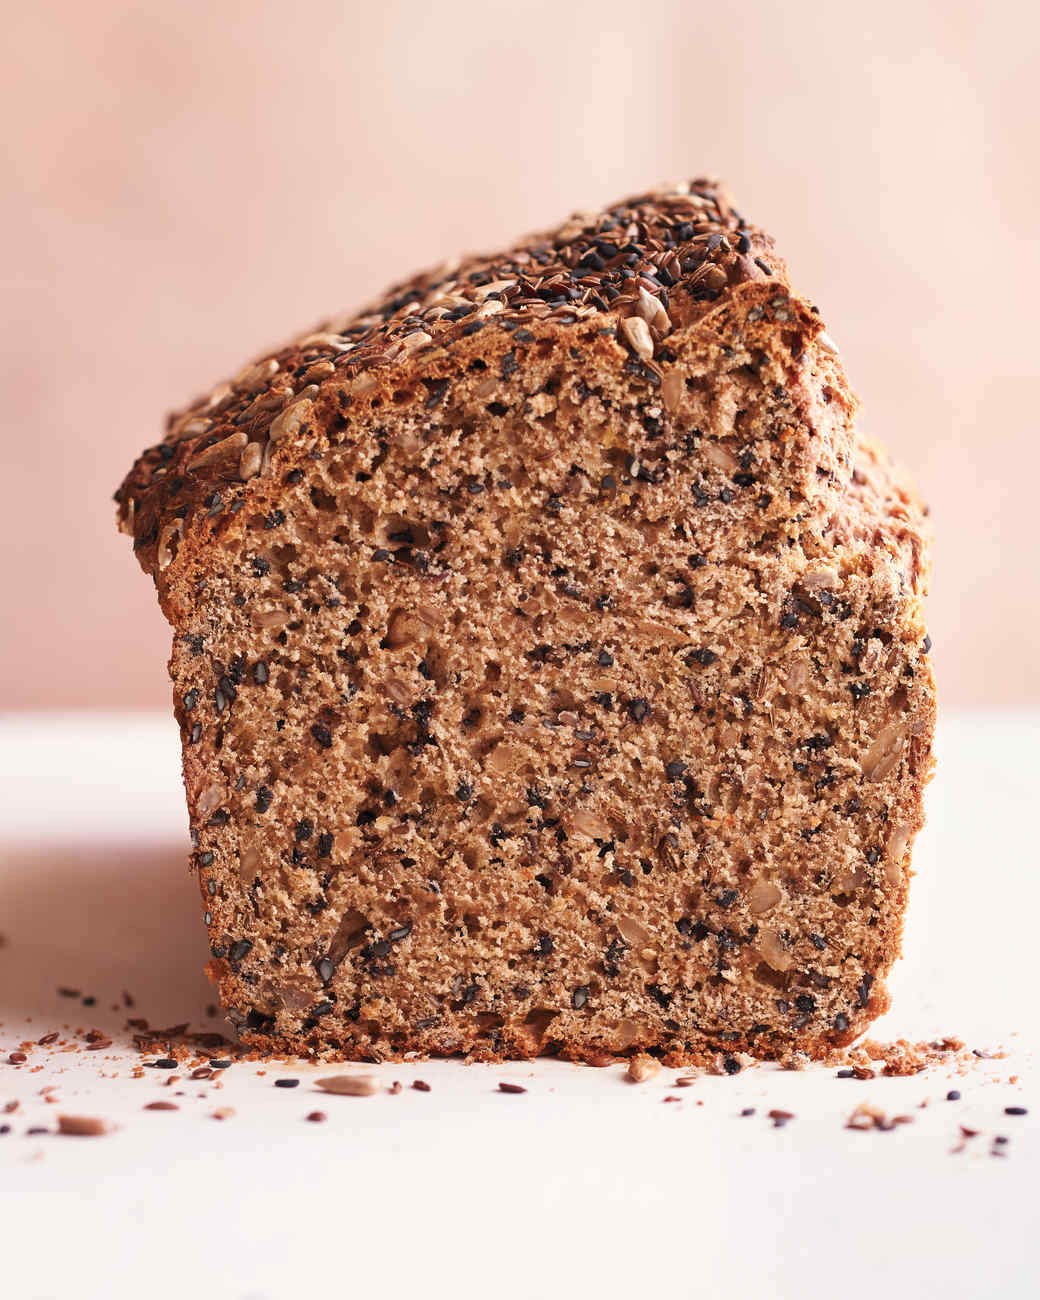 20 quick bread recipes that couldnt be easier or more delicious 20 quick bread recipes that couldnt be easier or more delicious martha stewart forumfinder Choice Image